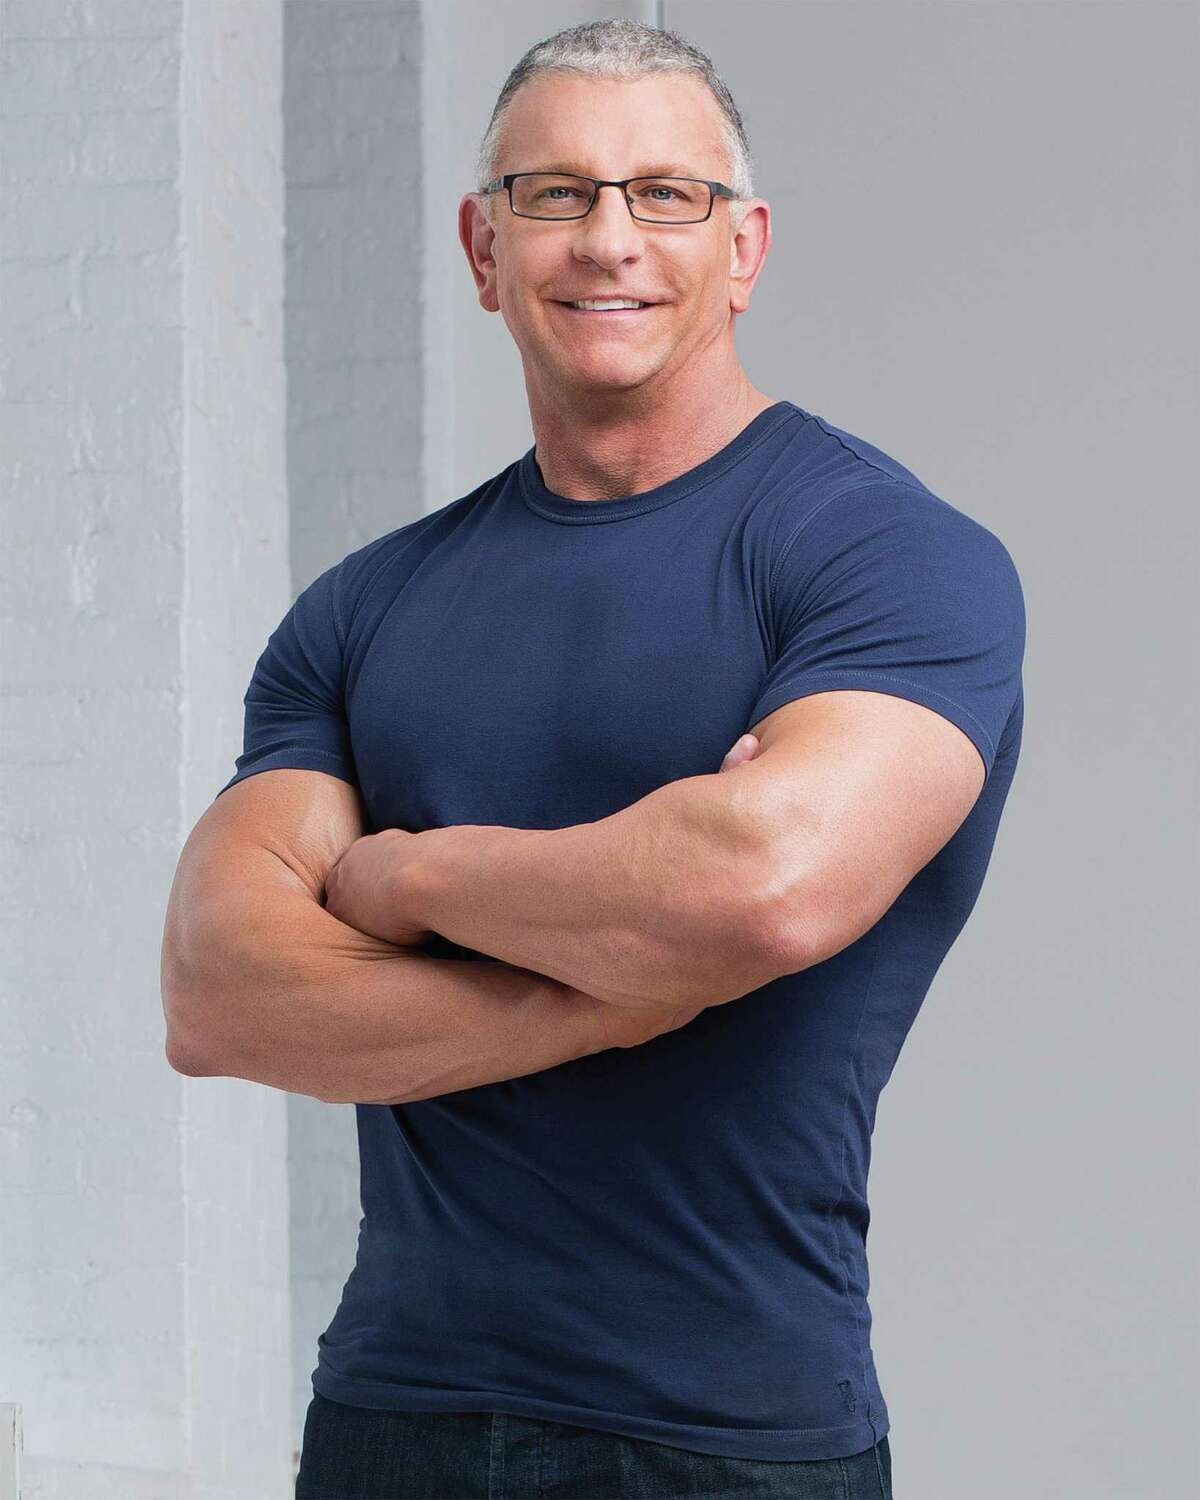 Celebrity chef Robert Irvine brings his interactive live show to the Waterbury Palace on Friday, Dec. 4.